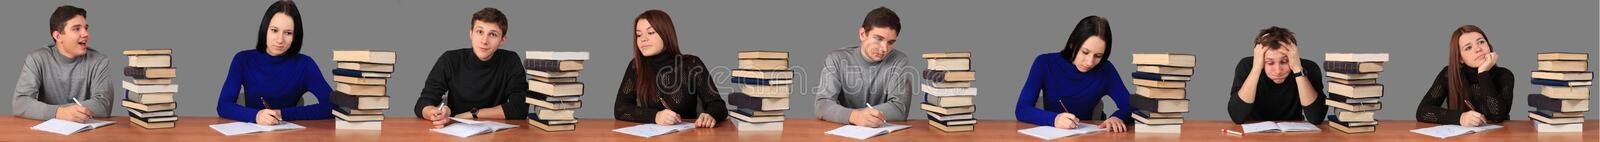 Students working on task royalty free stock photo